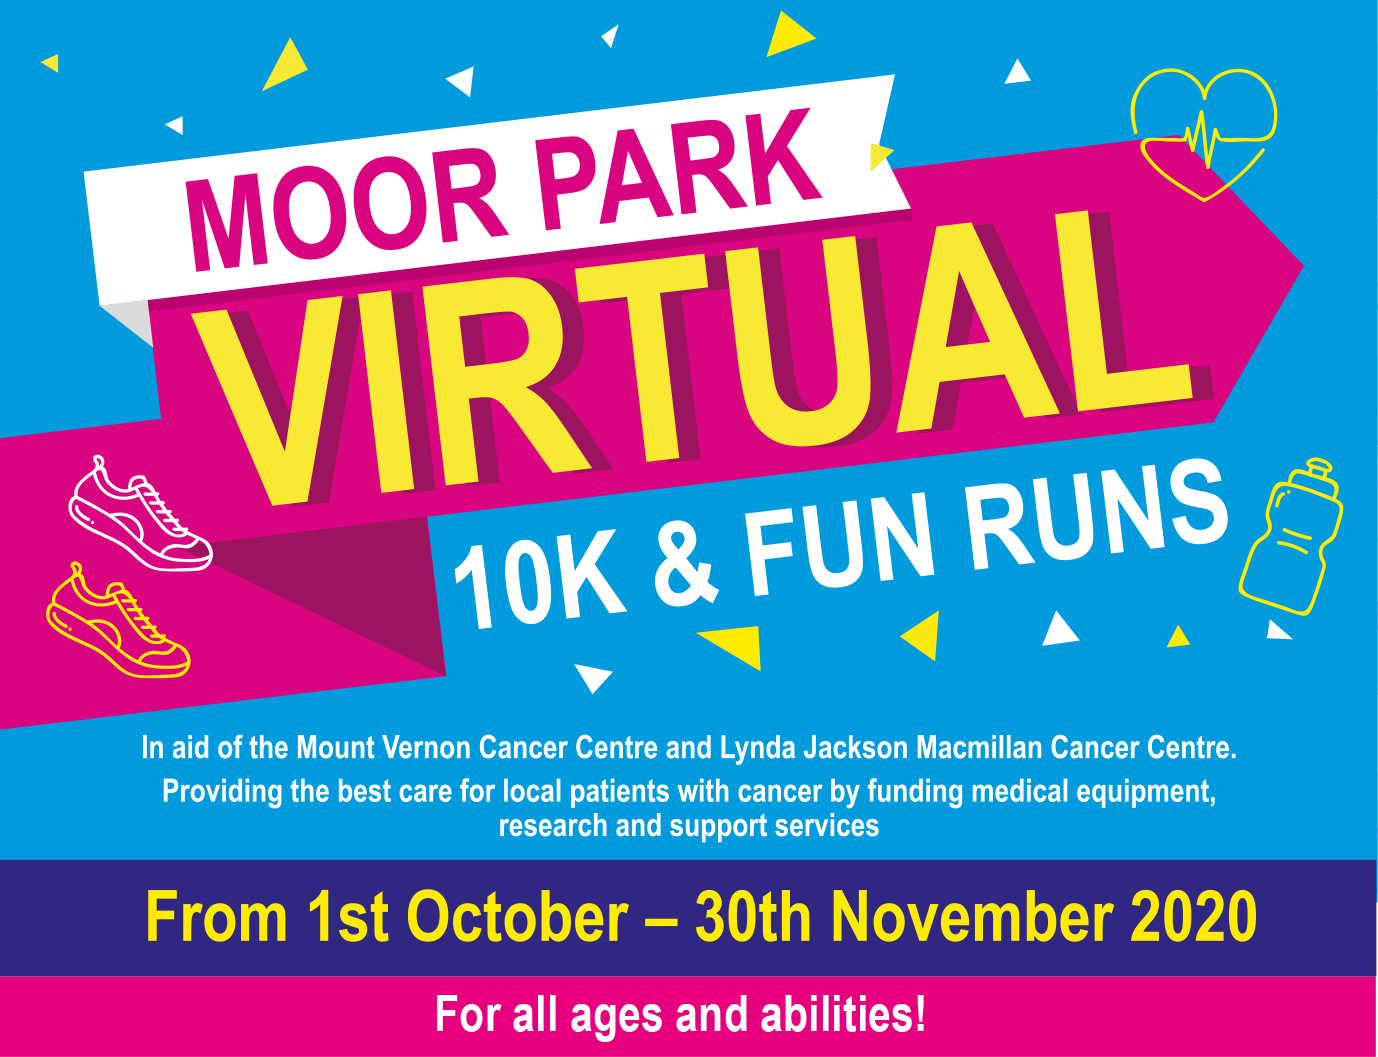 The Virtual 10k has been extended till the end of November 2020